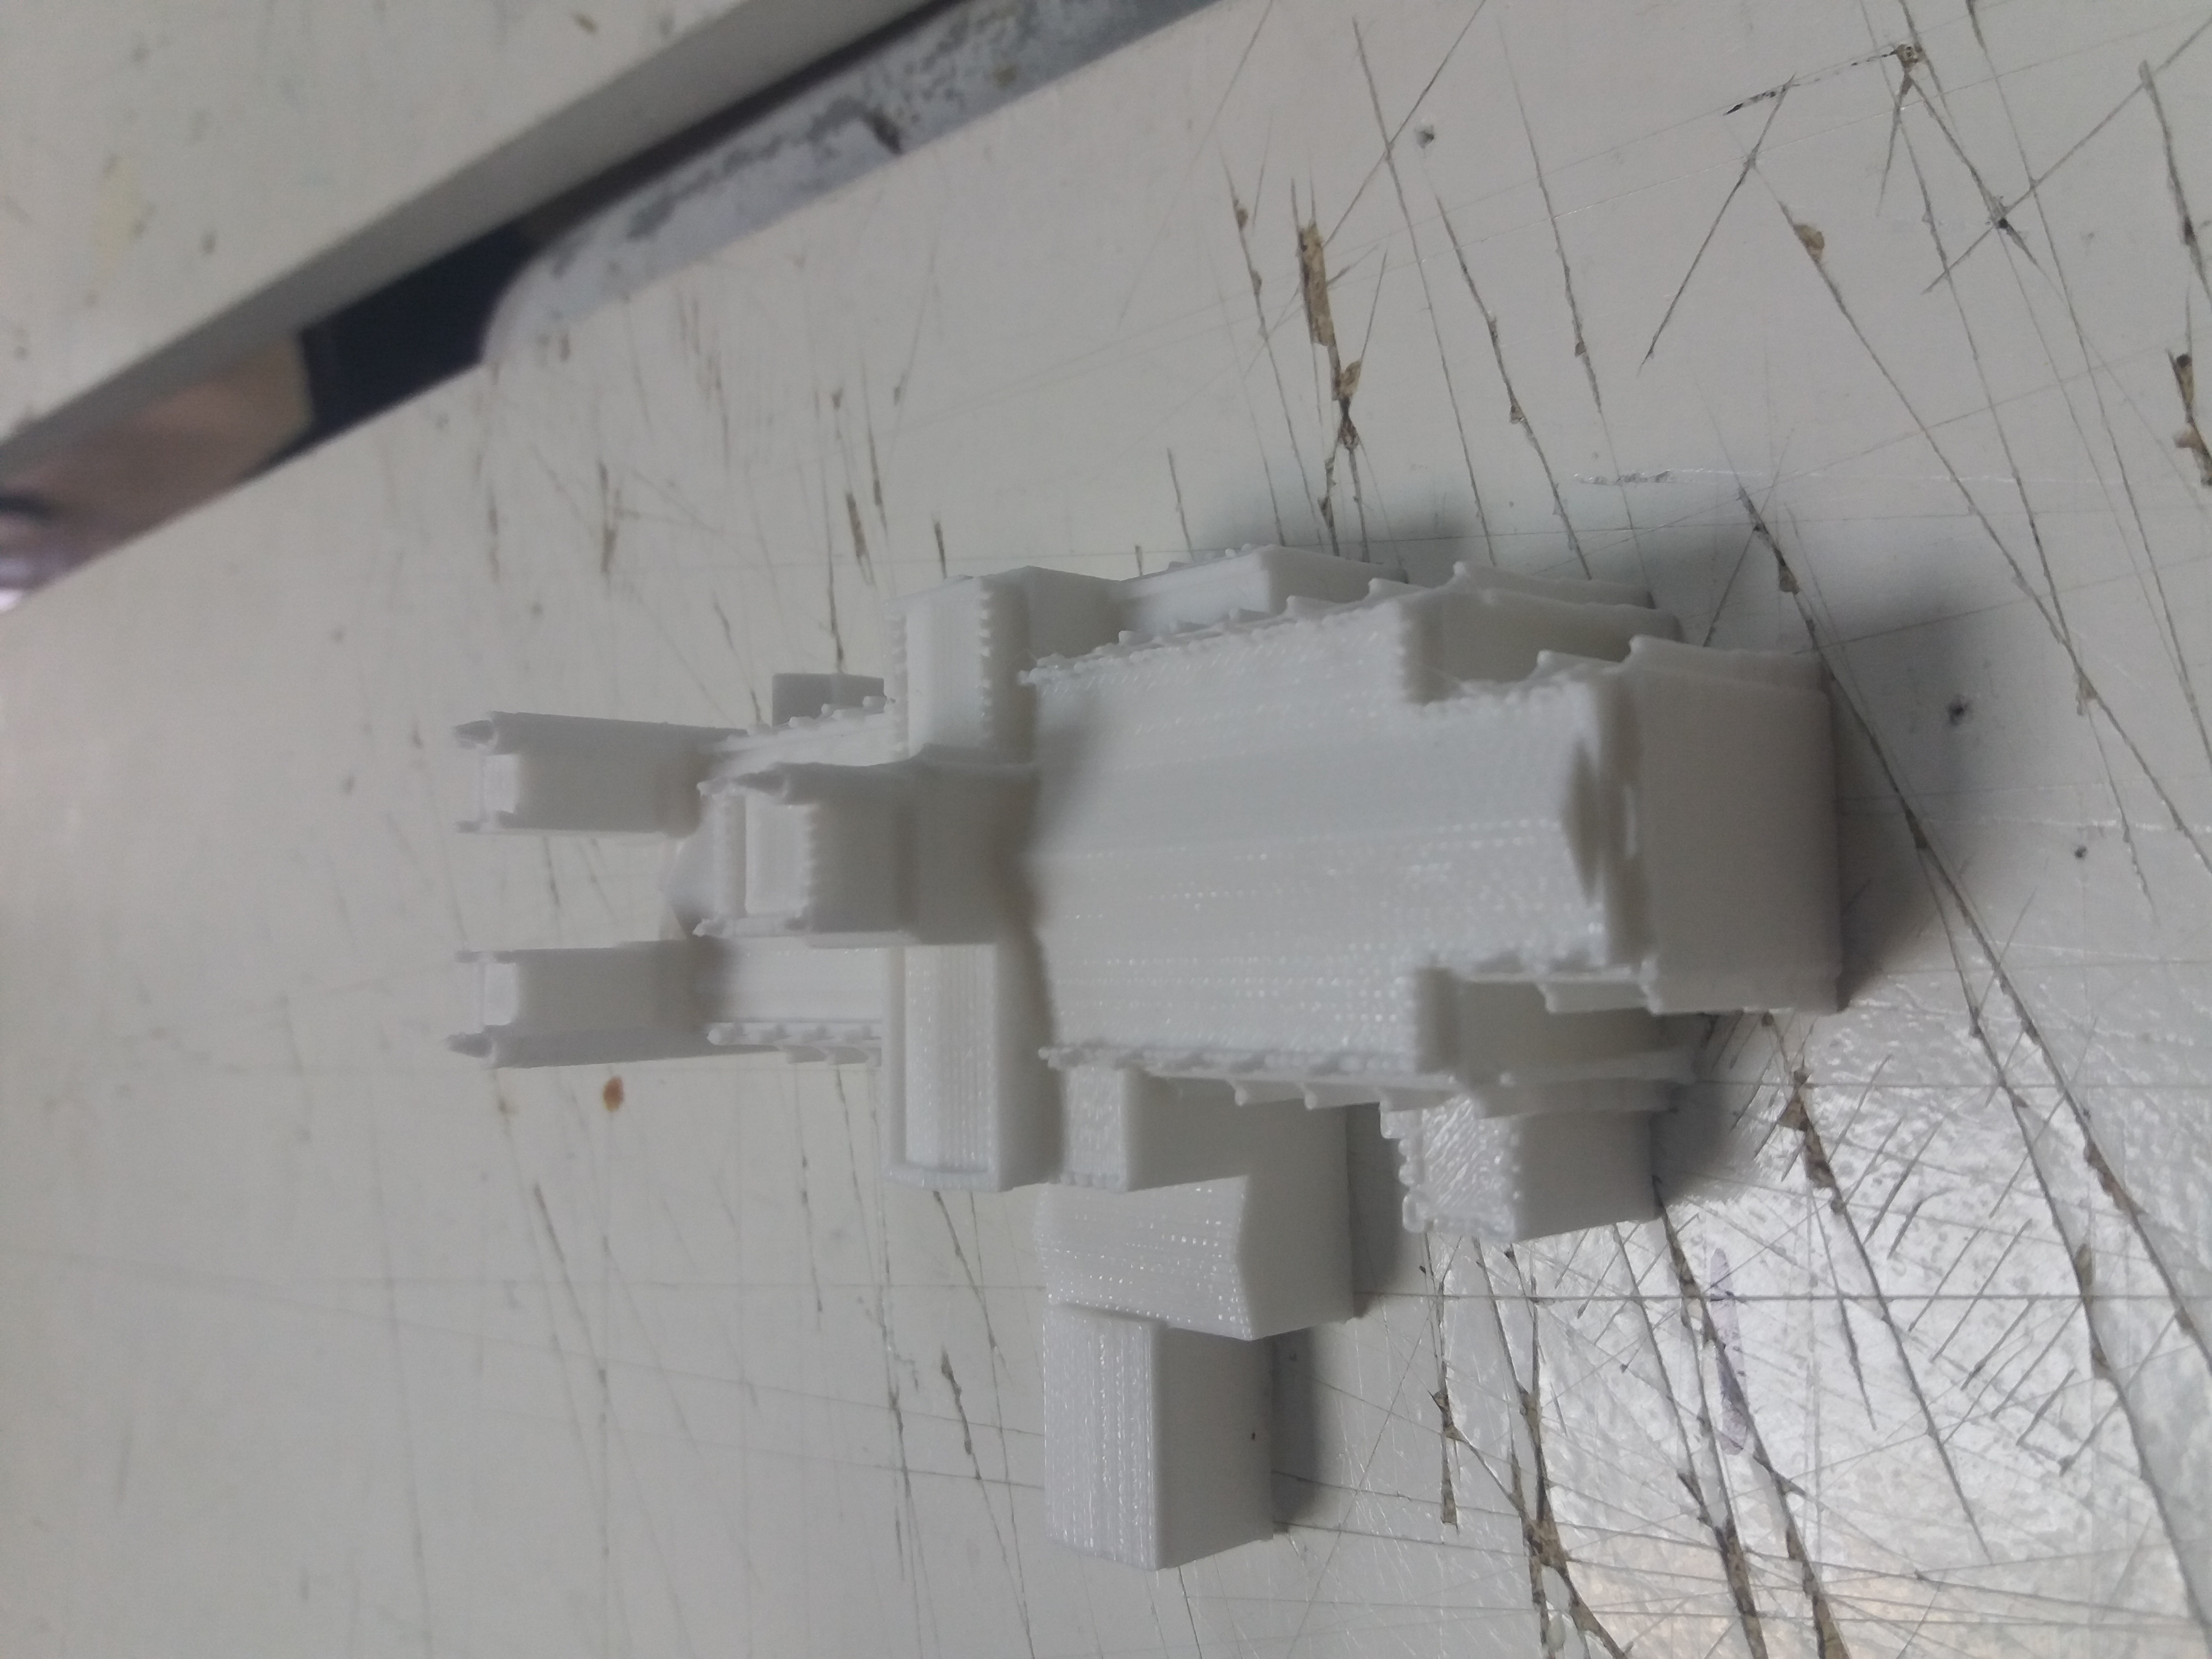 20190515_104643.jpg Download free OBJ file Bristol Cathedral • 3D printer template, jpmansilla23